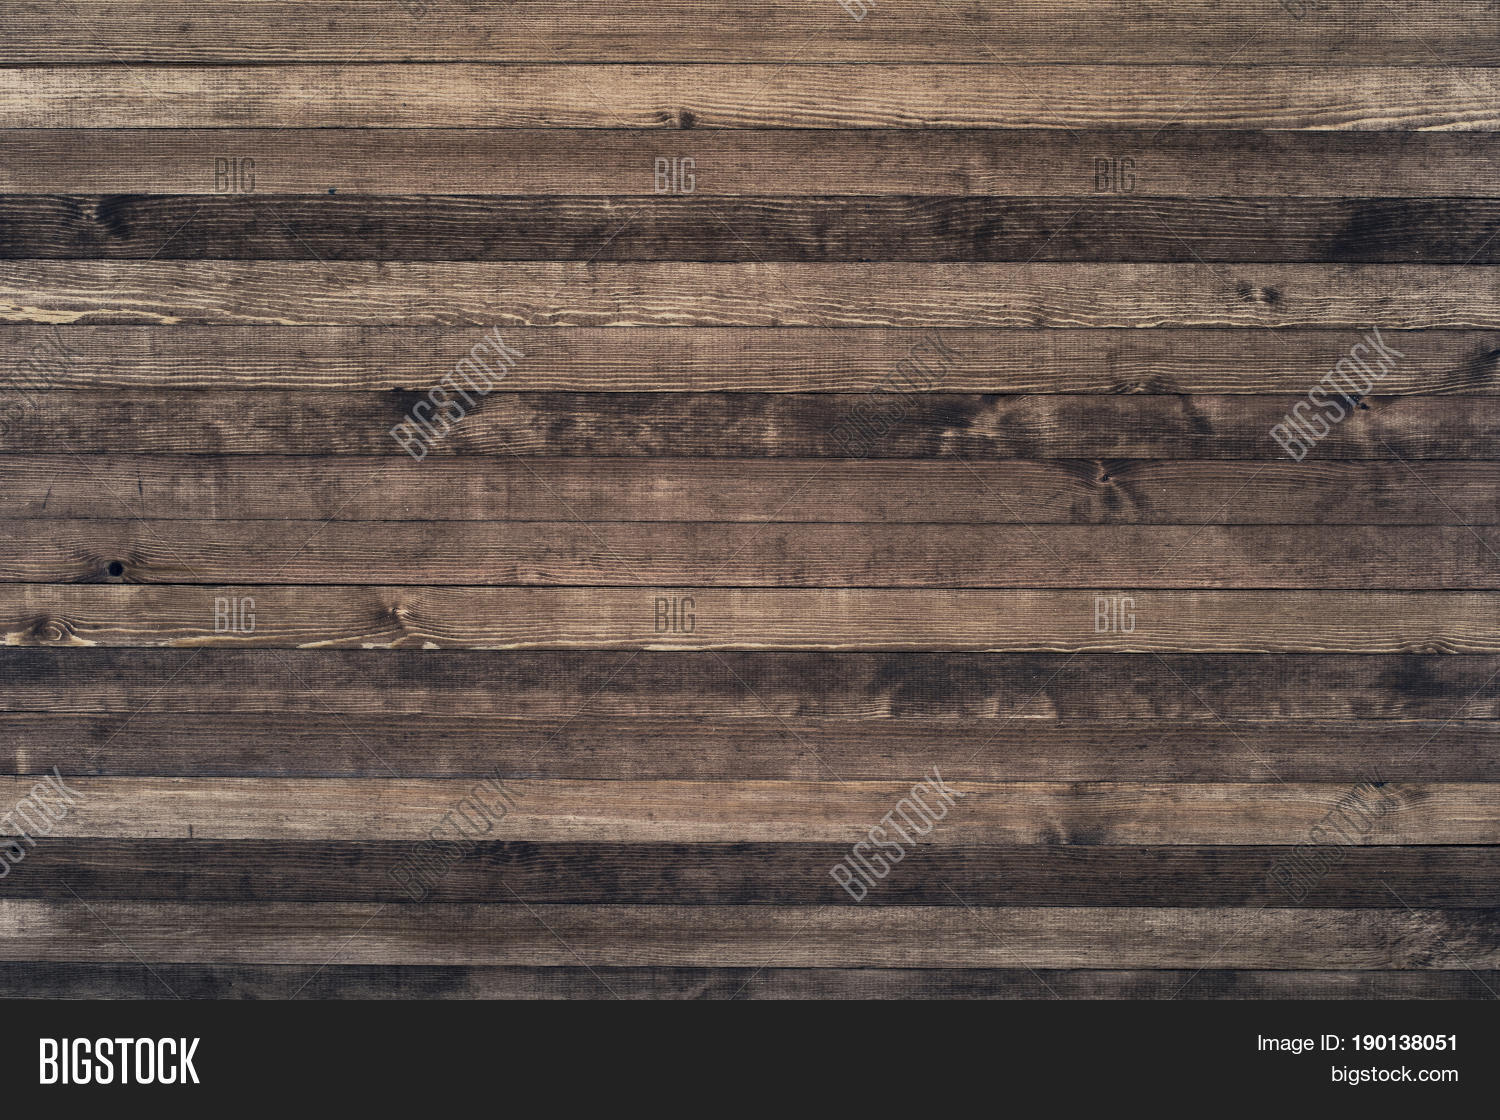 Wood table top texture - Empty Wood Table For Product Placement Or Montage Wood Table Top View Wood Table